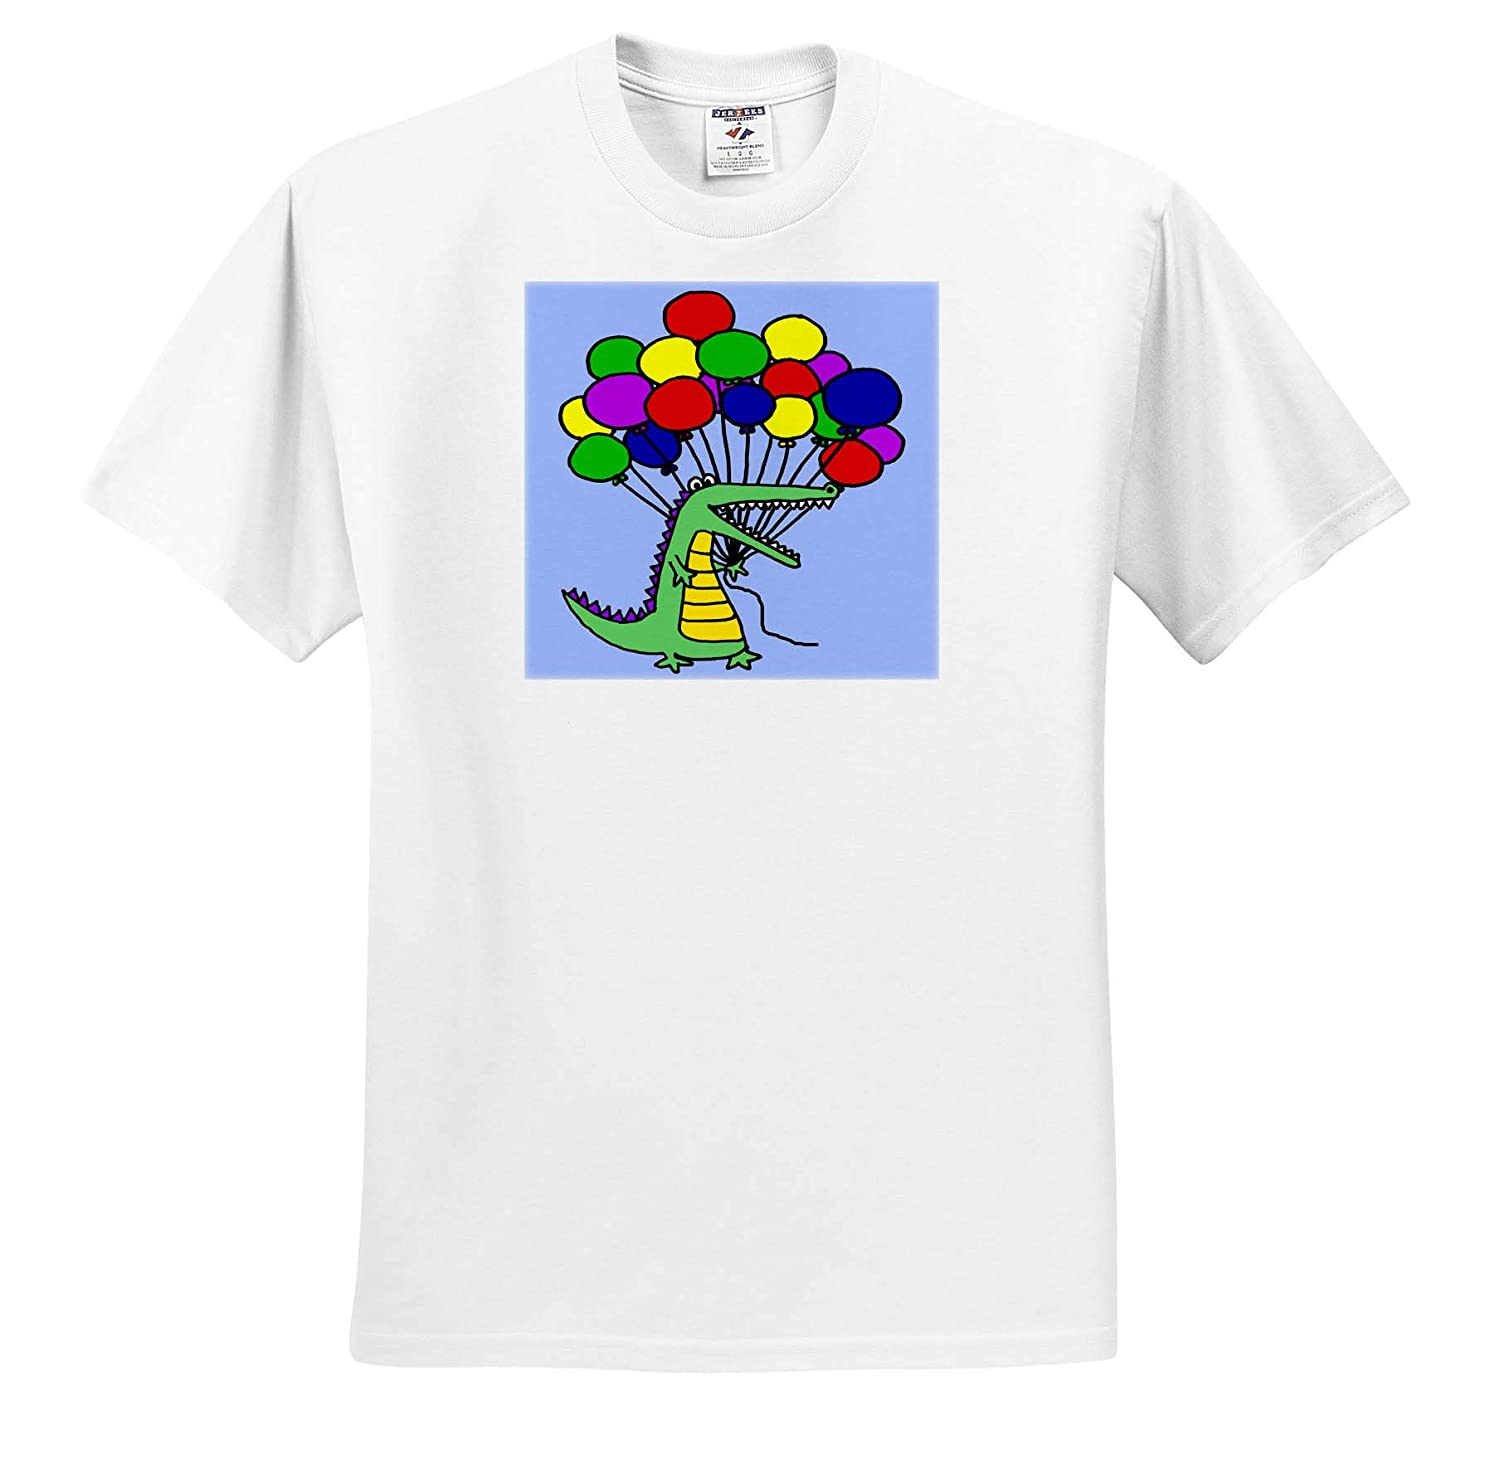 ts/_311663 3dRose All Smiles Art Funny Cute Alligator or Crocodile Holding Colorful Balloons Animals Adult T-Shirt XL